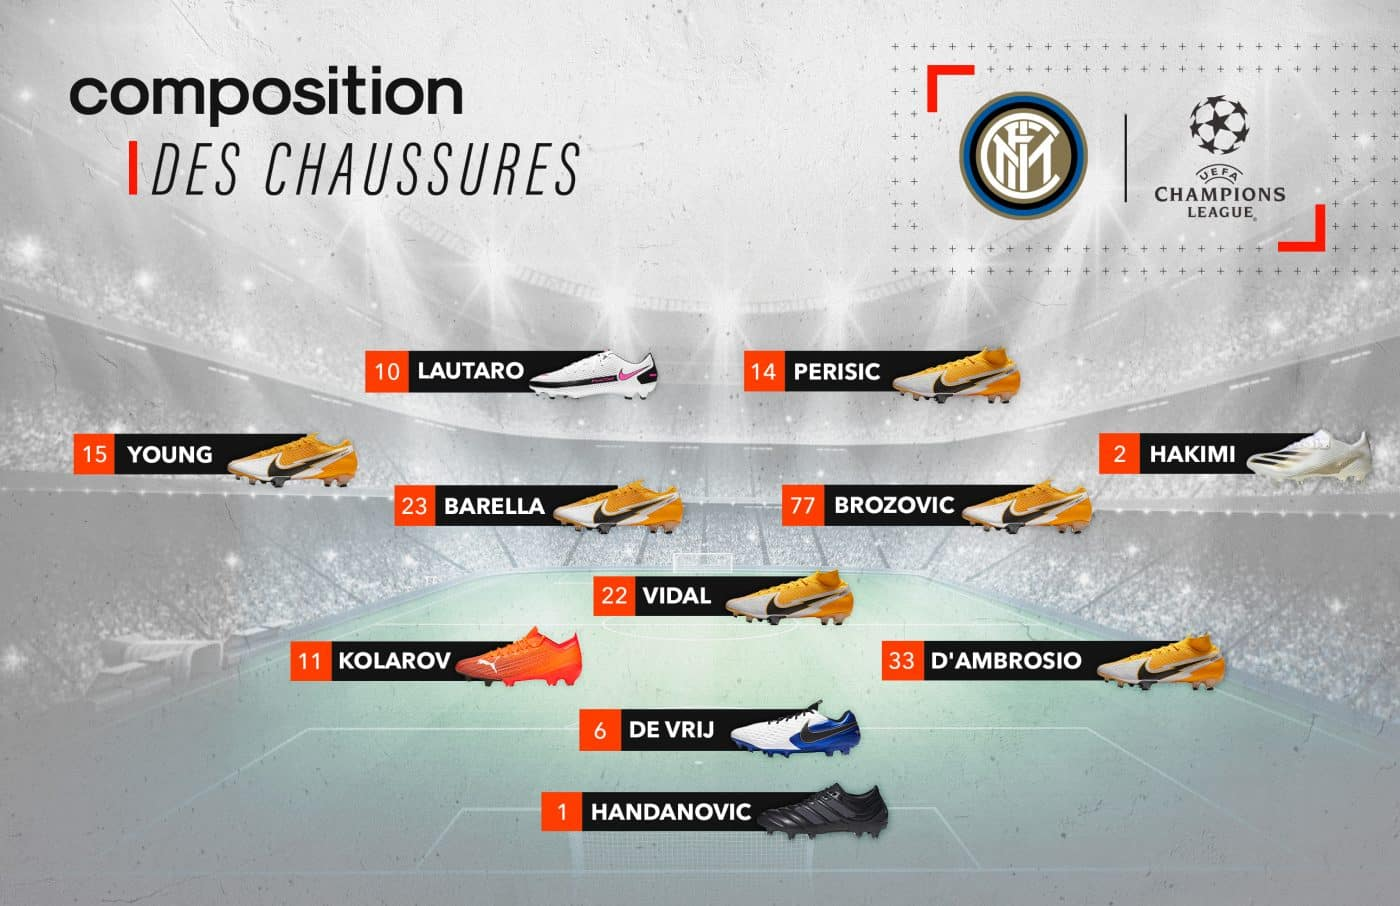 compositions-chaussures-real-madrid-inter-milan-footpack-2